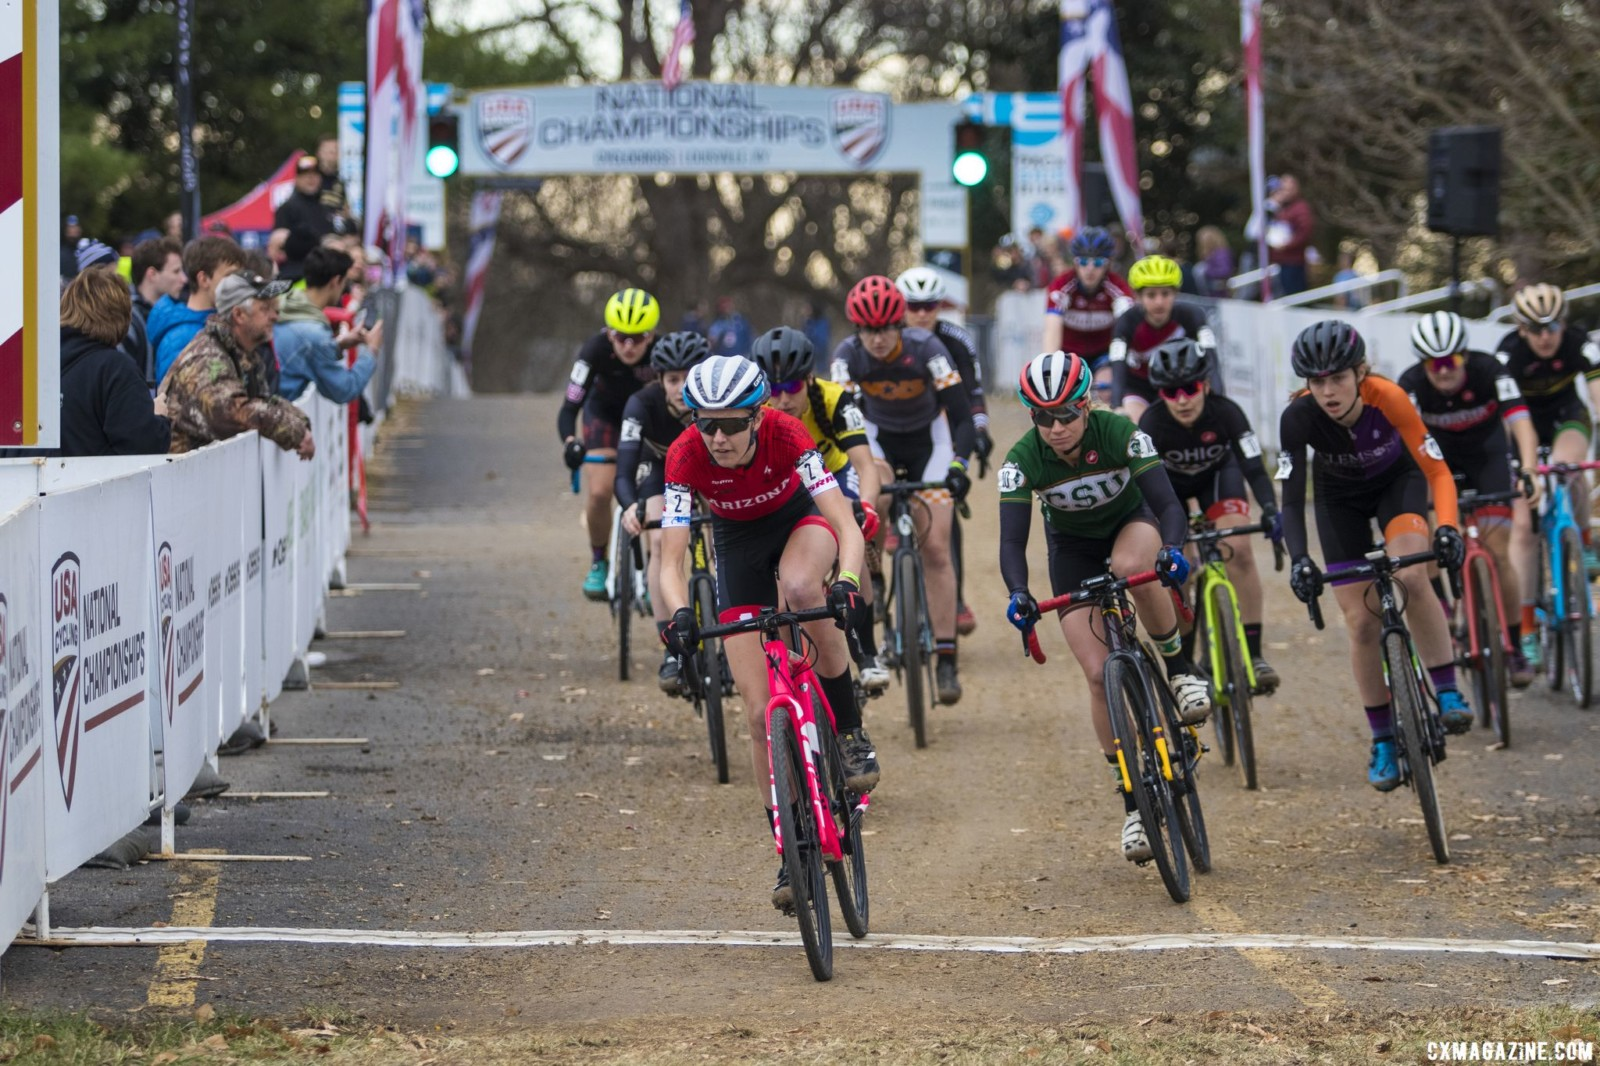 Cara Oneill led off the pavement, but Rossi was close behind. Collegiate Club Women. 2018 Cyclocross National Championships, Louisville, KY. © A. Yee / Cyclocross Magazine